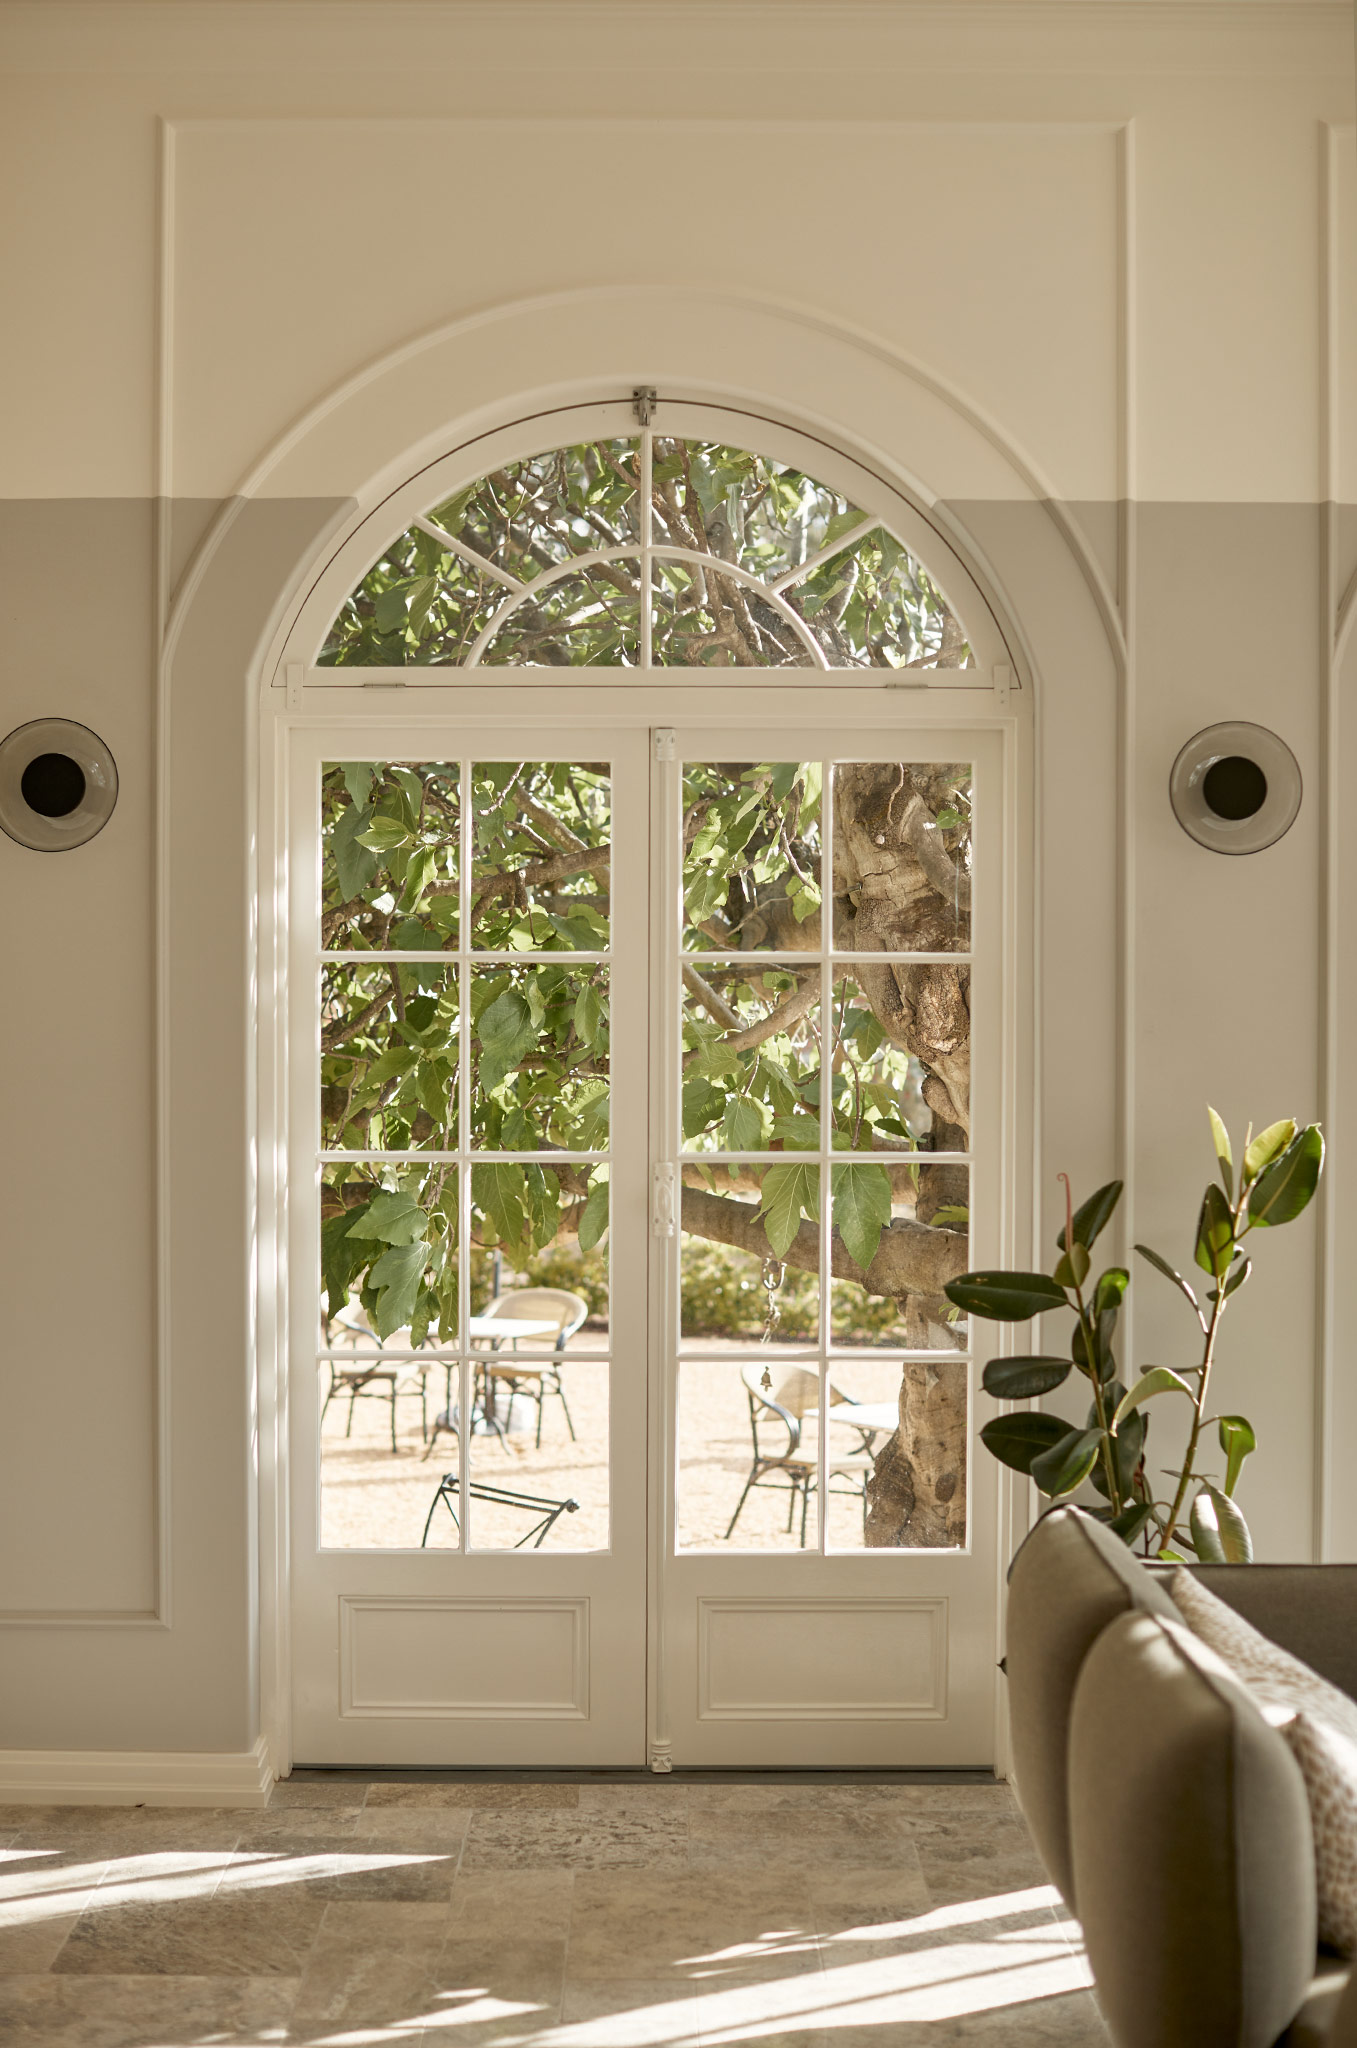 Arched French Conservatory Window looking out at 160 year old Fig Tree